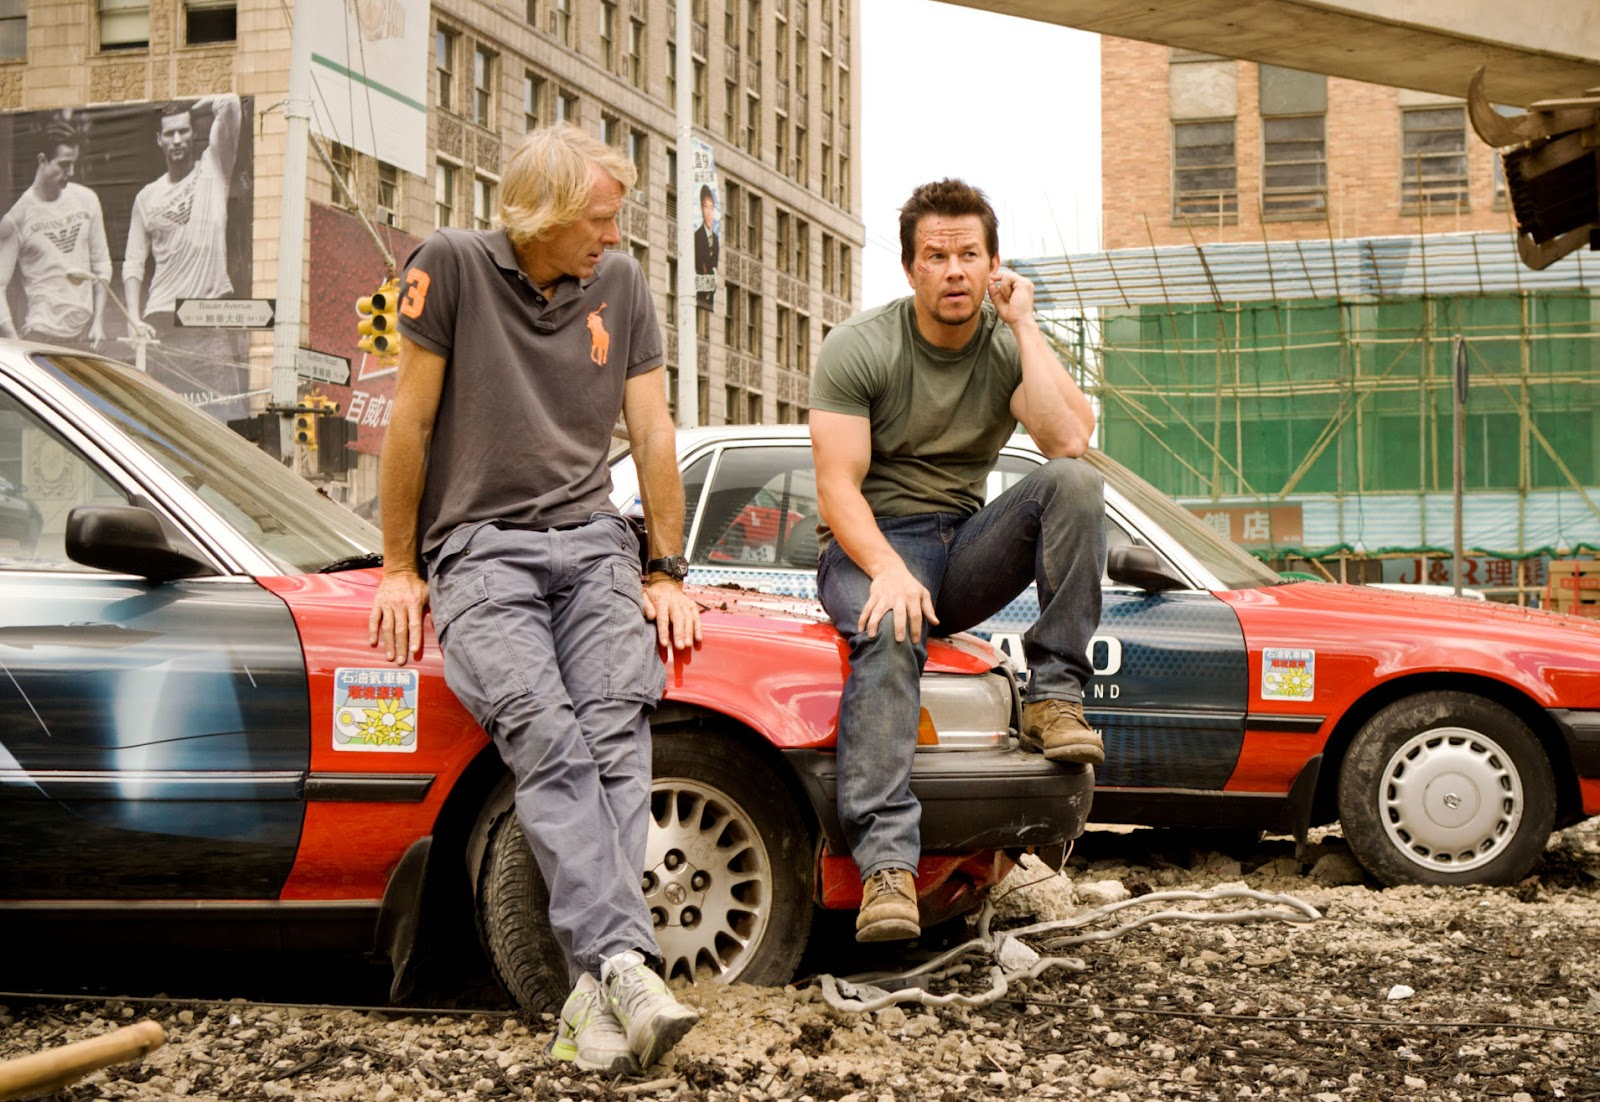 Mark Wahlberg on 'Transformers' film set